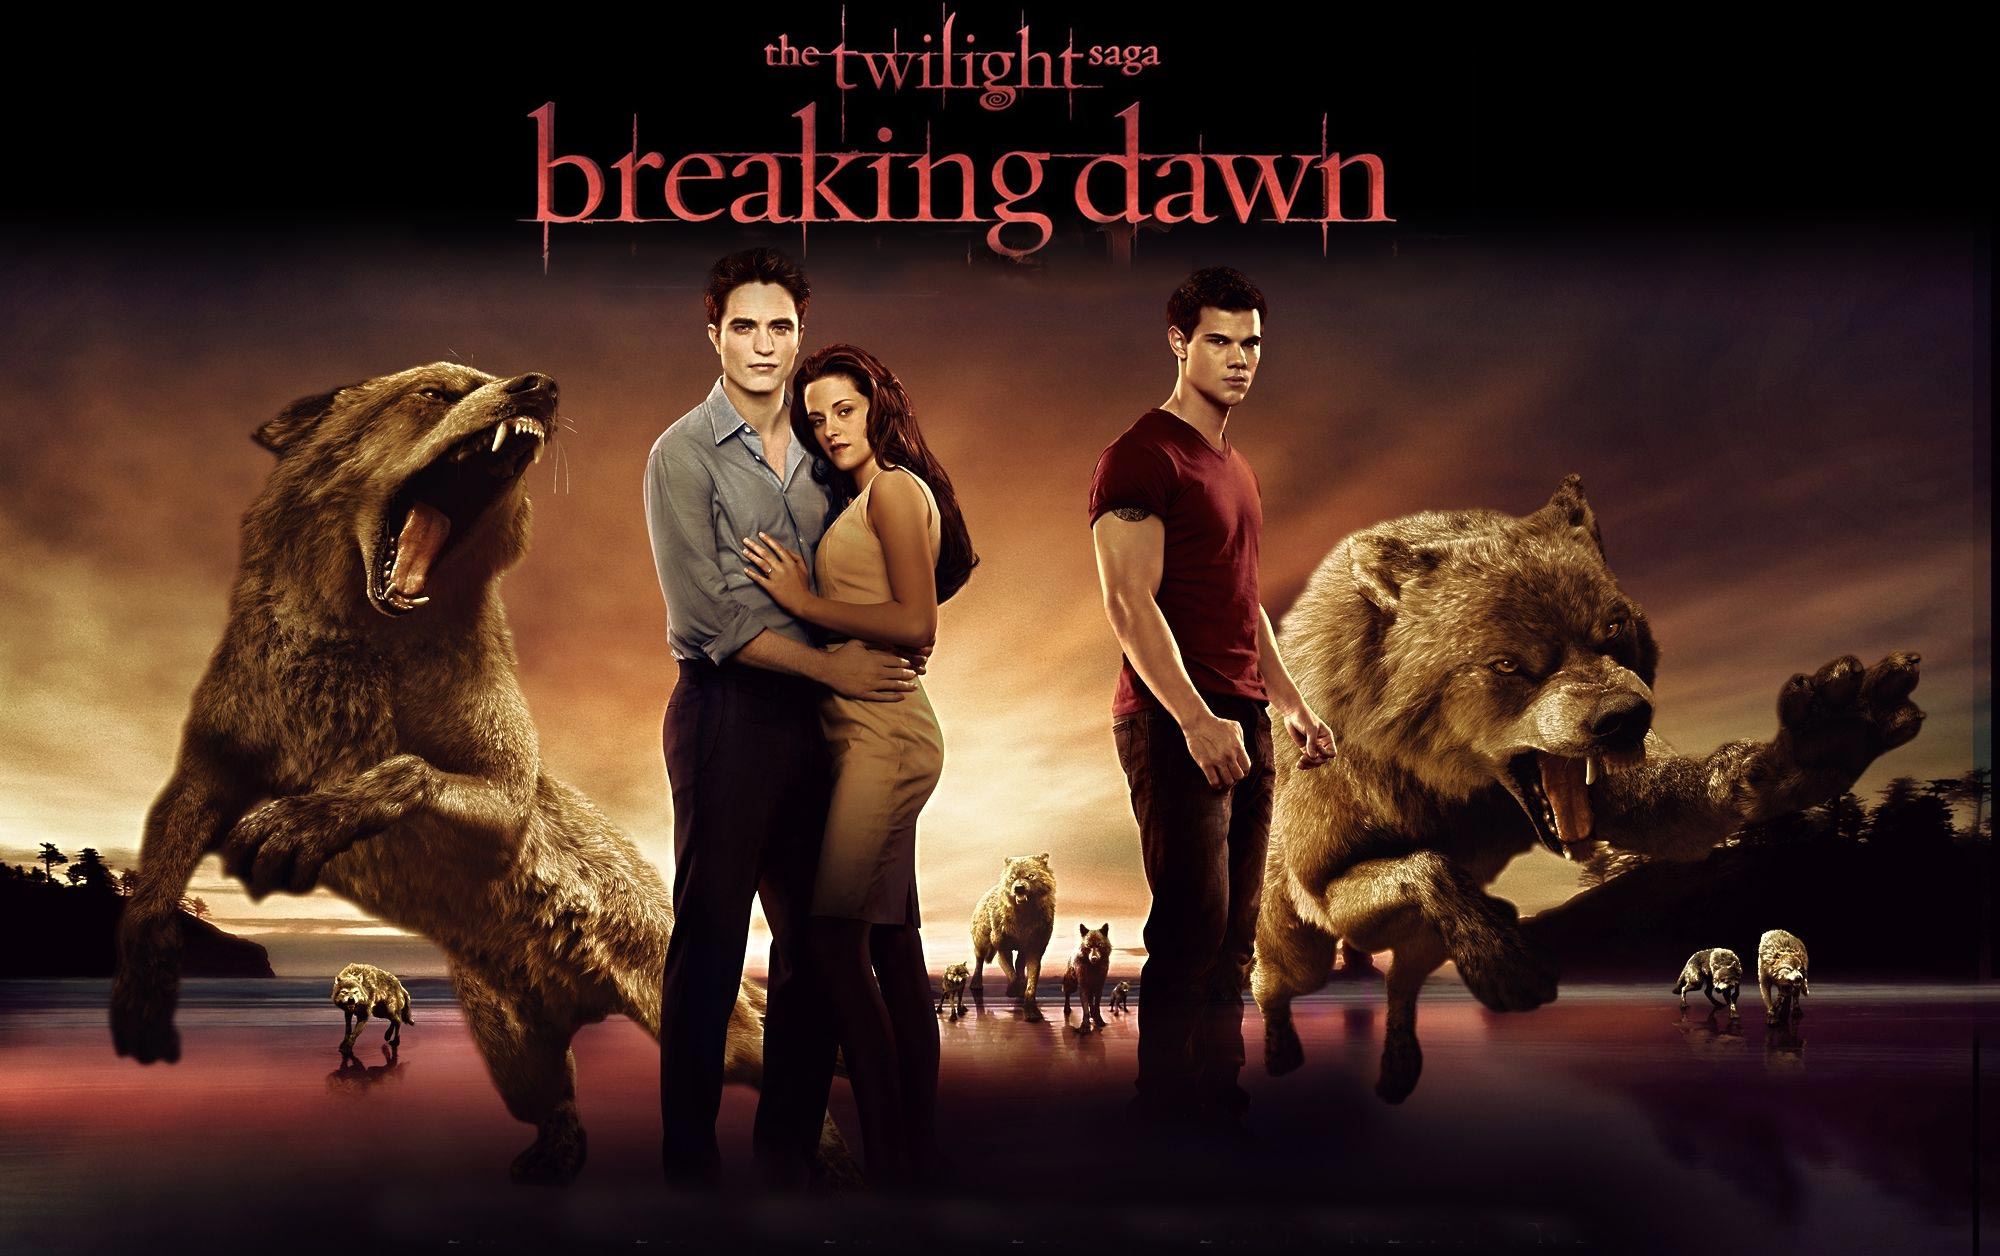 The-Twilight-Saga-Breaking-Dawn-Part-1-HD-Movie-2011